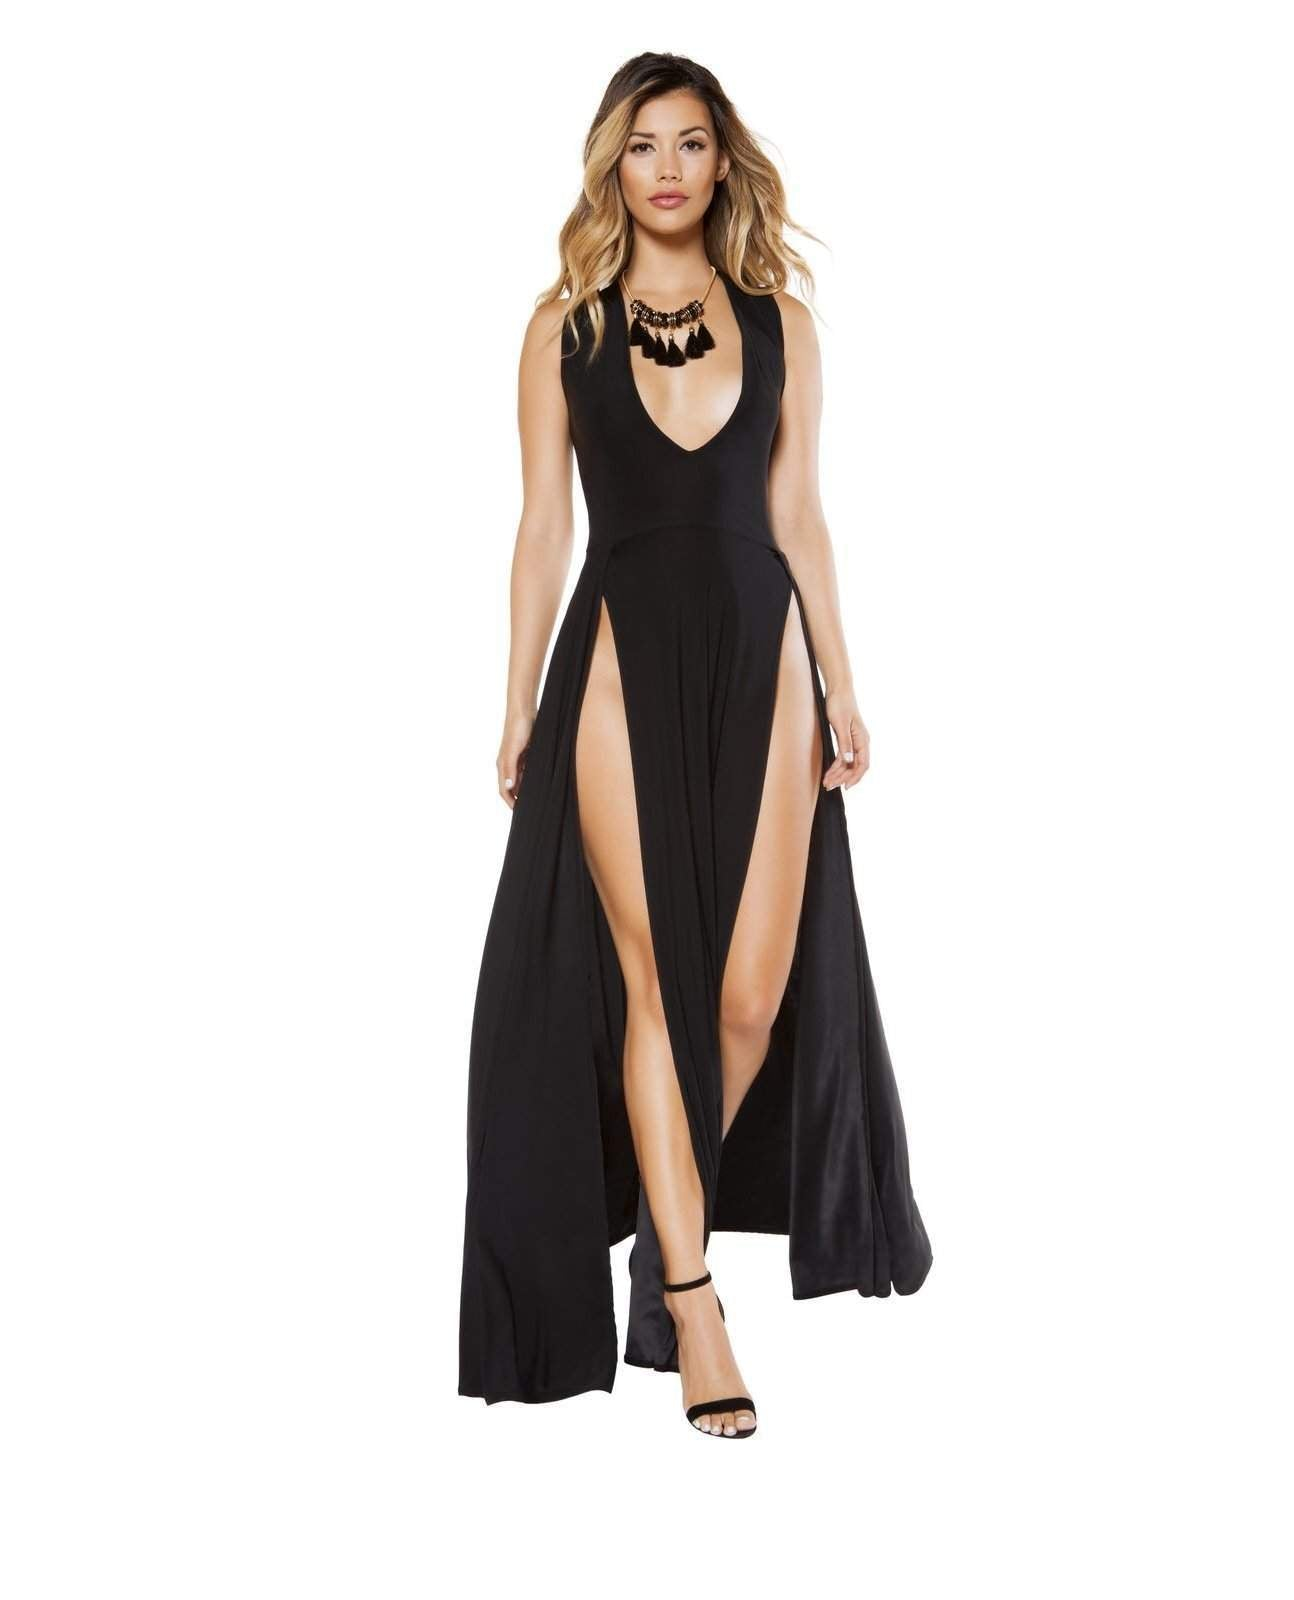 Maxi Length Plunge Neck Dress club wear color BlackSize LargeNakees